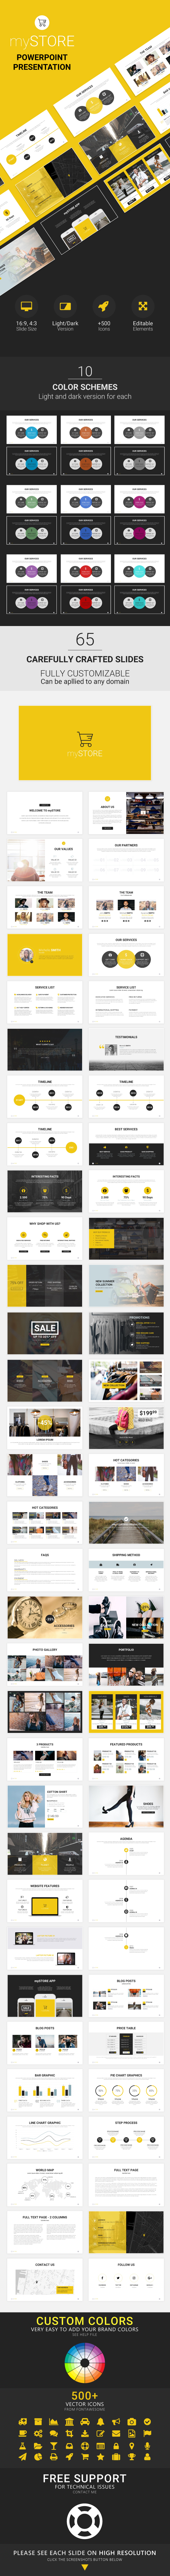 myStore - Powerpoint Presentation - Business PowerPoint Templates